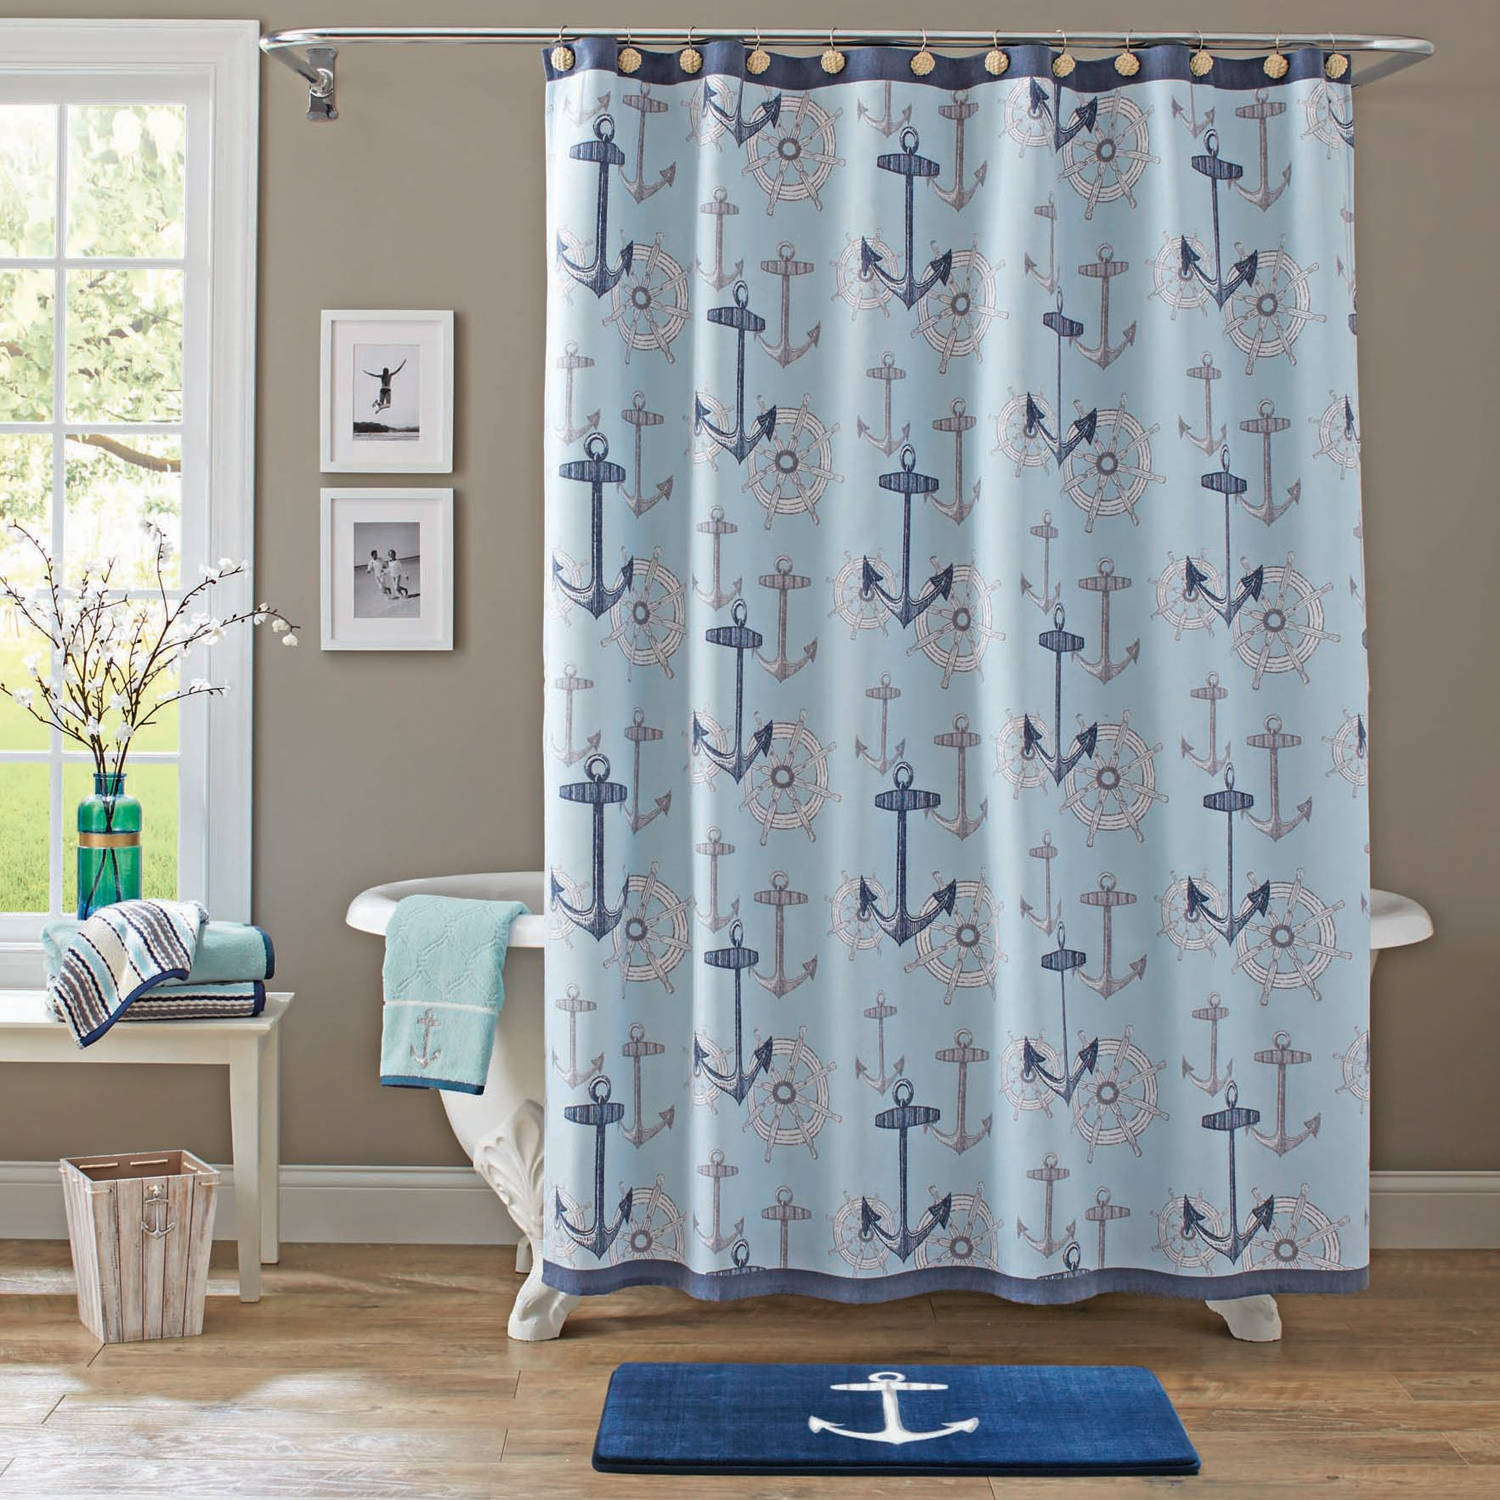 Chevron bathroom sets with shower curtain and rugs - Amazoncom Shower Curtain And 3 Pc Window Curtain Set Bathroom Bathwalmartcom